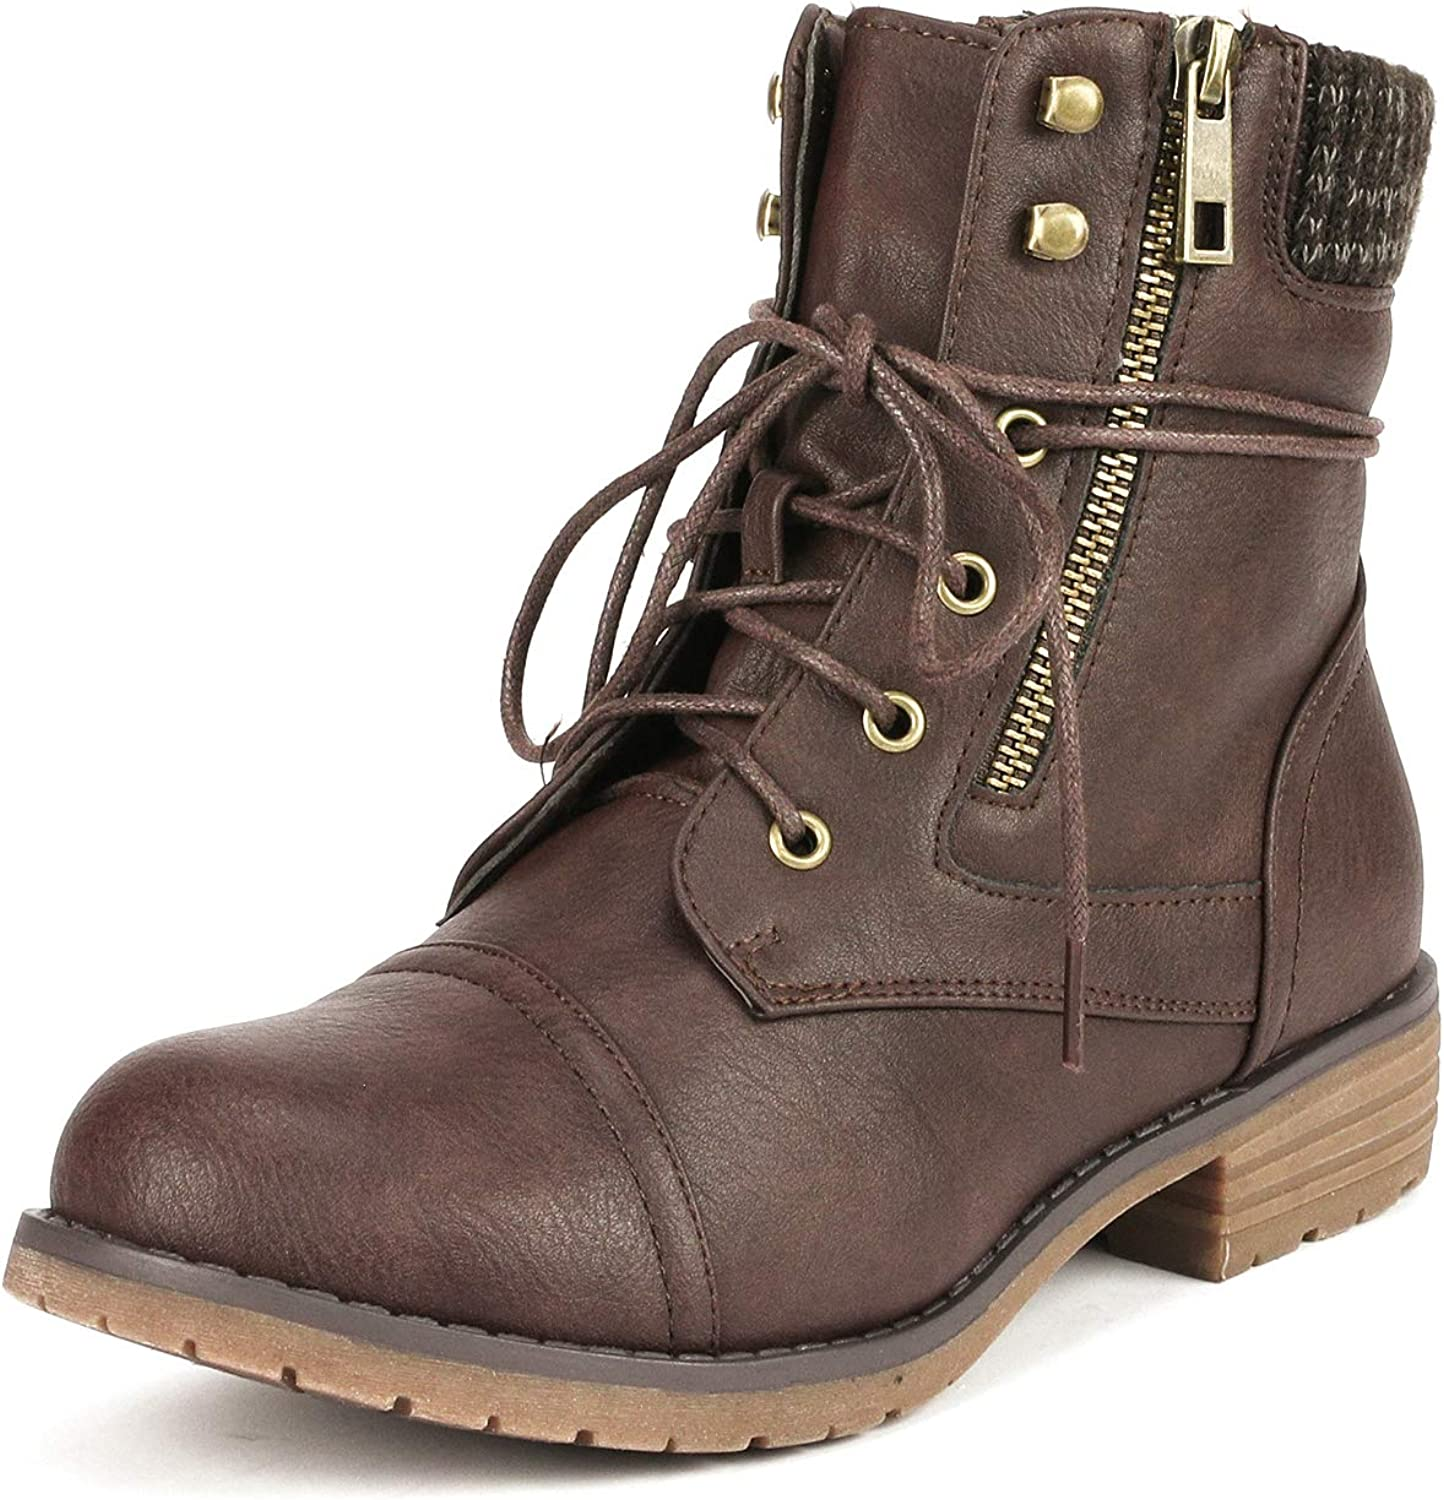 DREAM PAIRS Womens Lace Up Combat Boots Low Heel Round Toe Ankle Boots Shoes